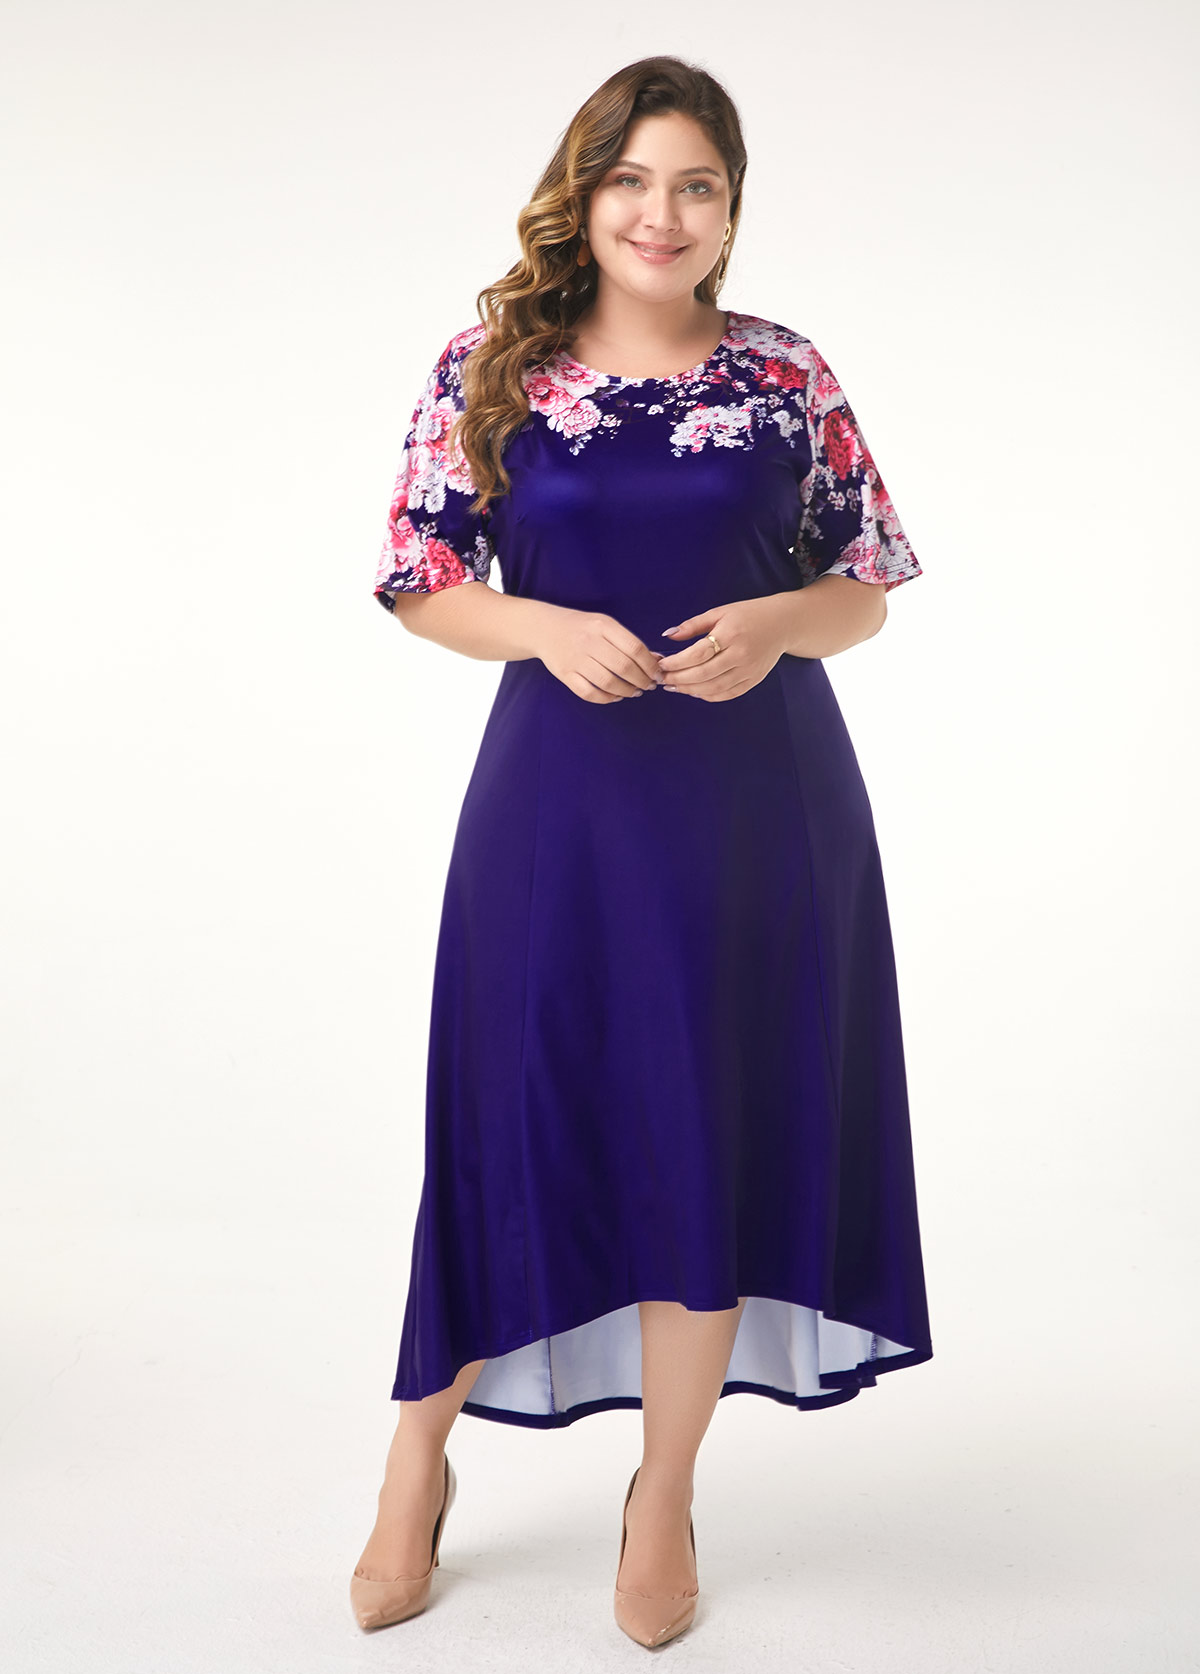 Dip Hem Flower Print Plus Size Dress